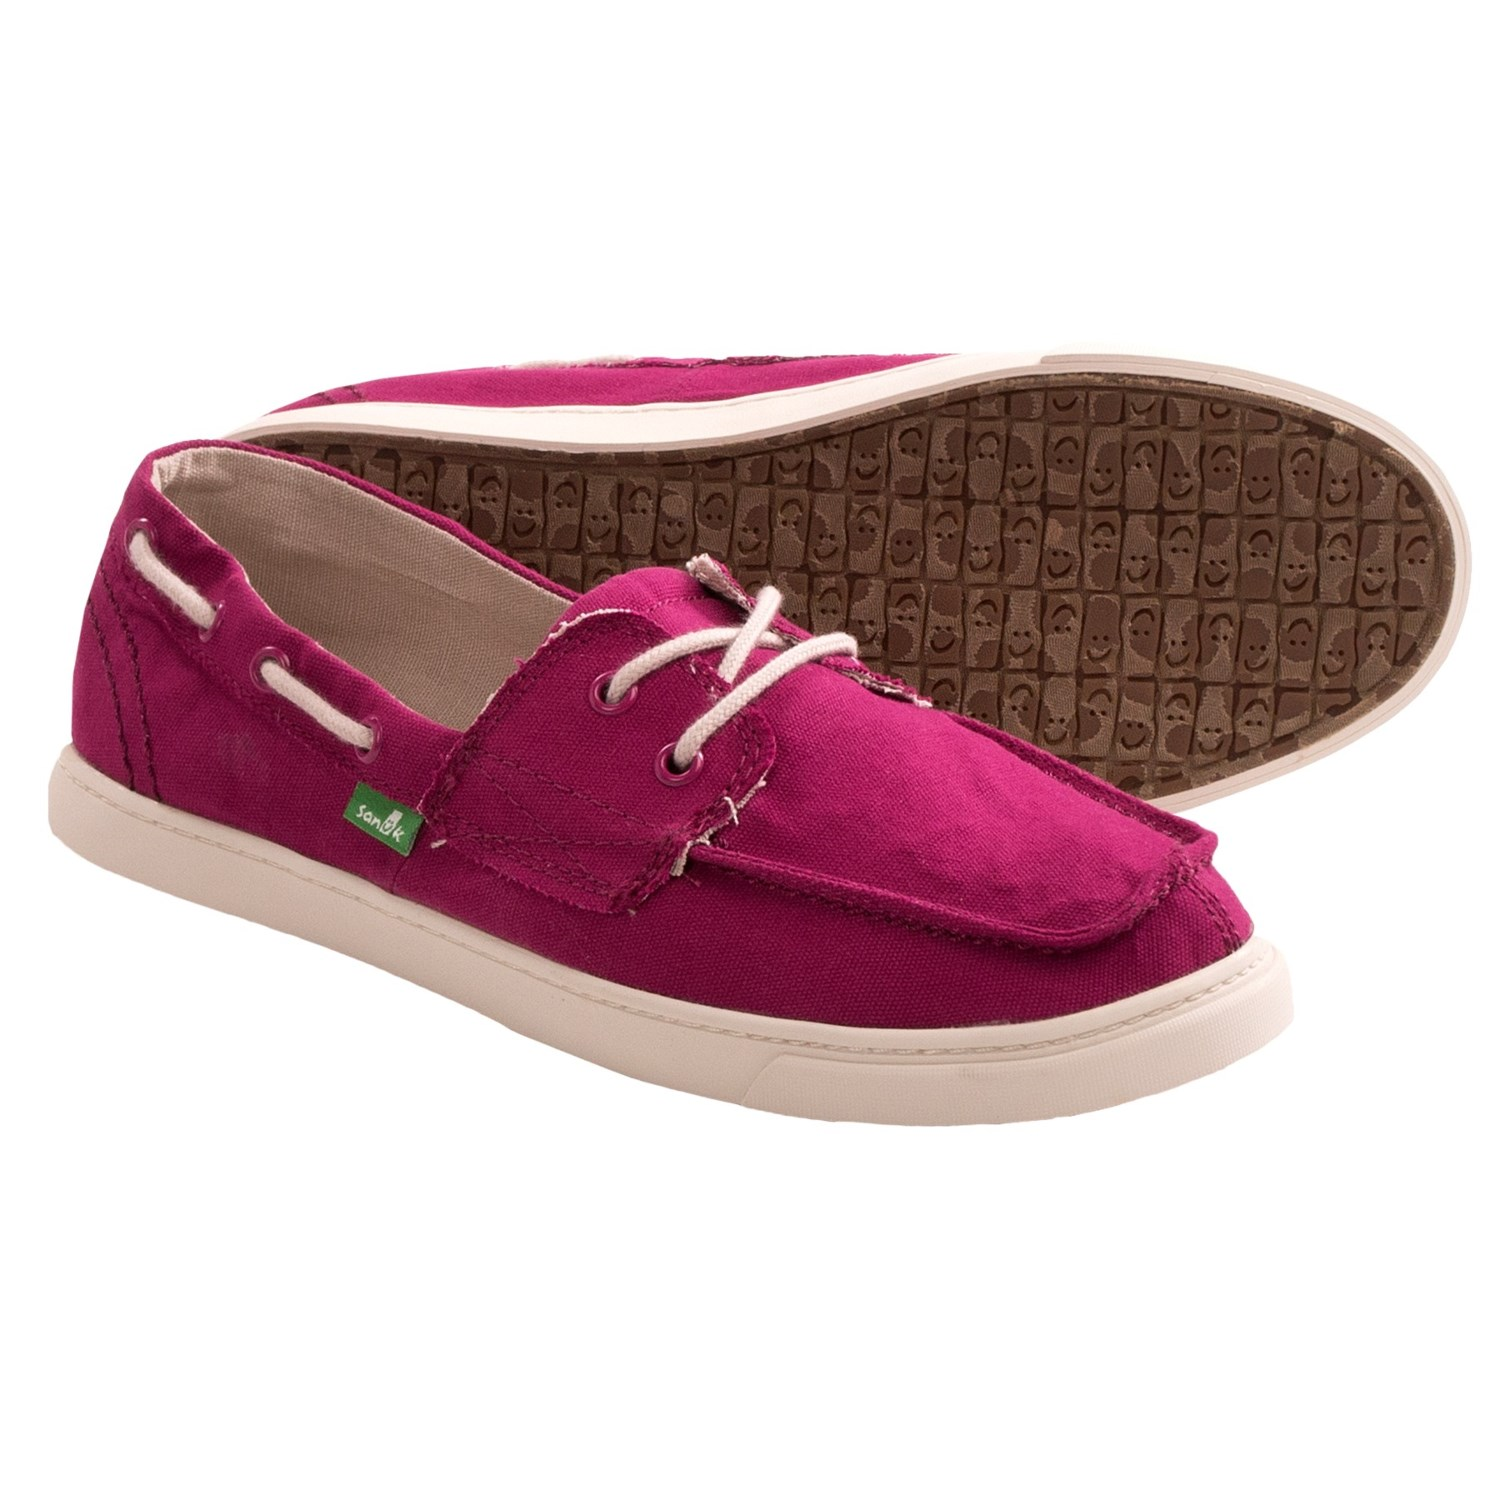 great casual shoes - Sanuk Baseline Shoes (For Men) - review by